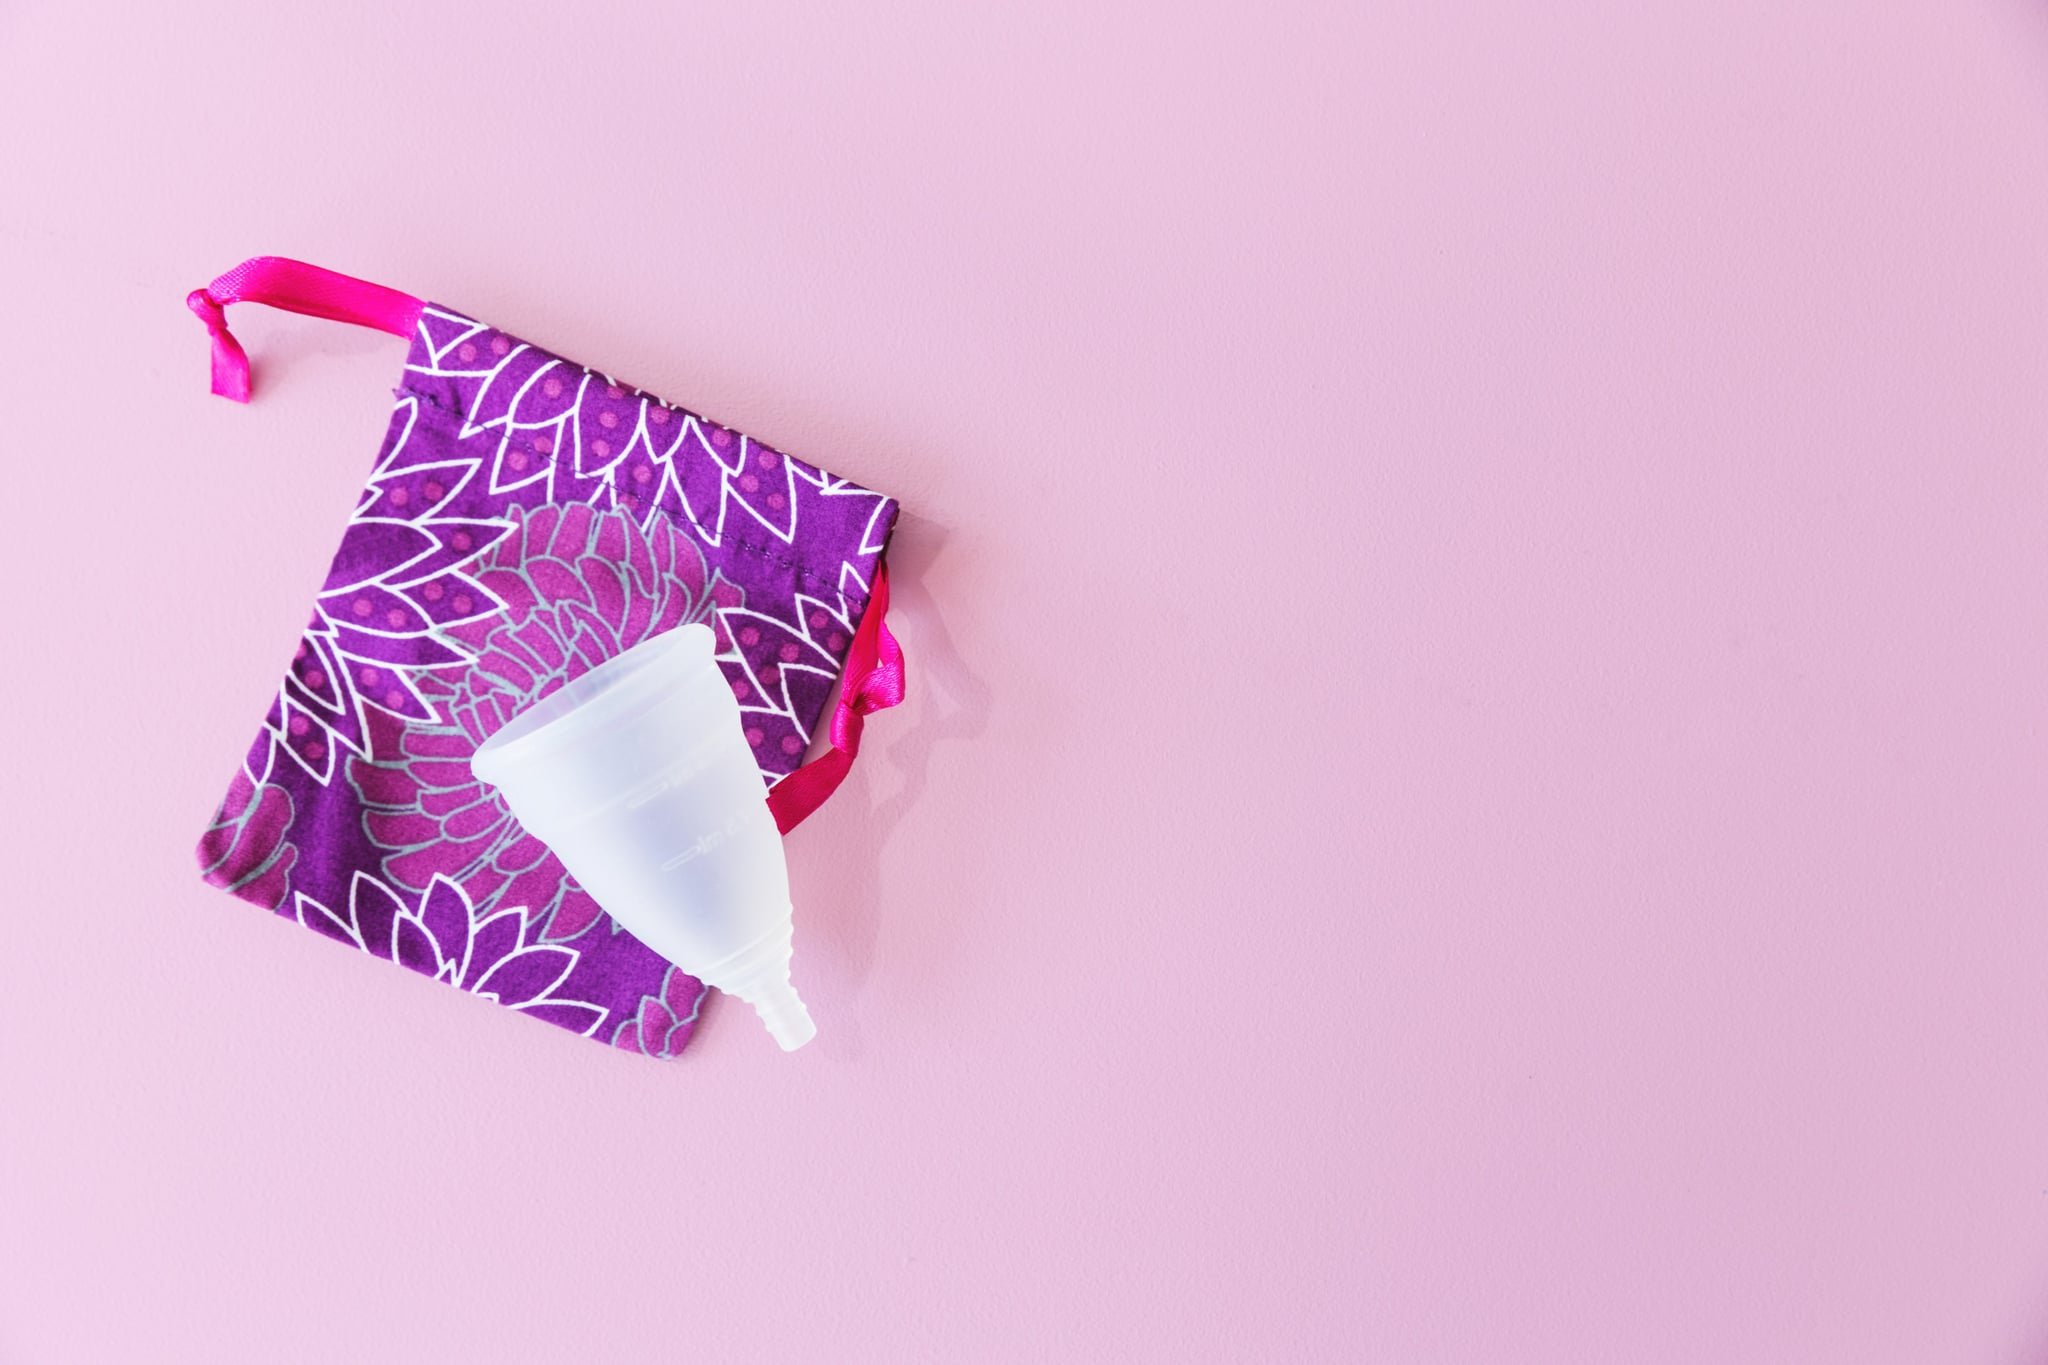 Scared That Your Menstrual Cup Is Stuck? An Ob-Gyn Explains What to Do Next